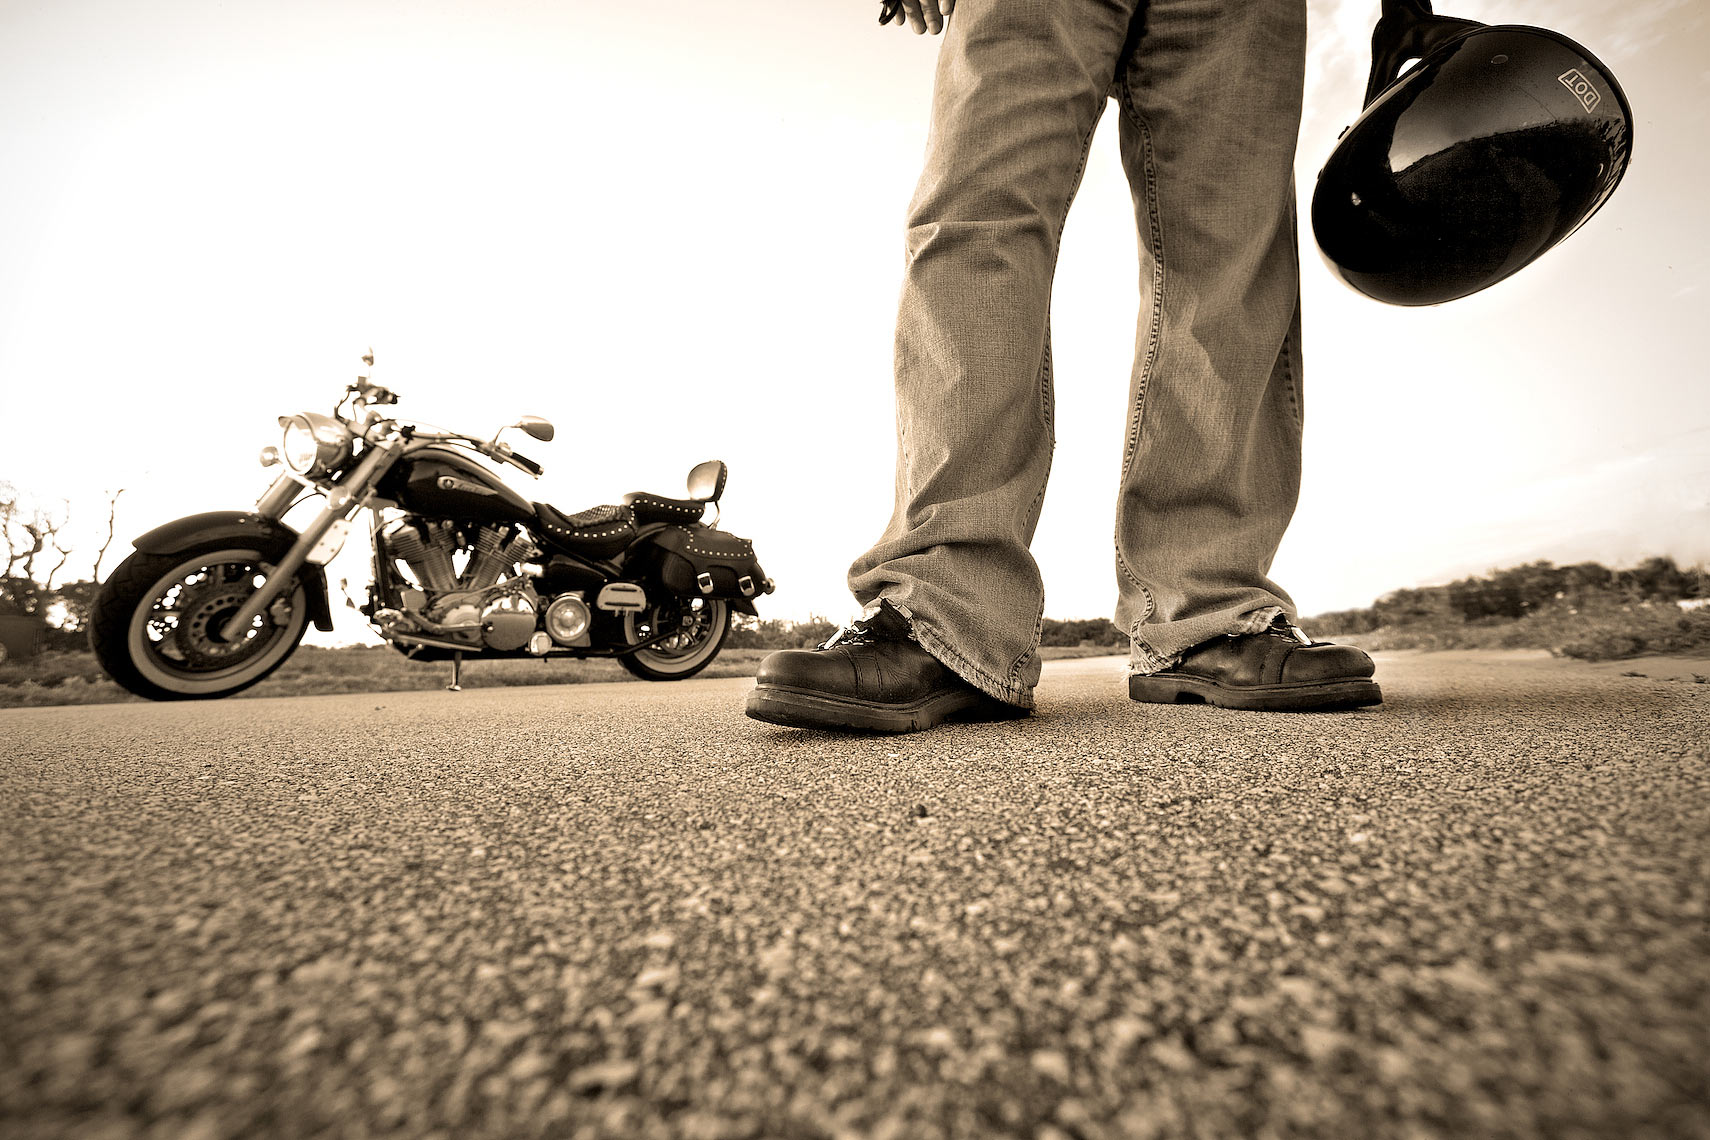 low angle view of motorcycle rider standing in road with bike_Robert-Hollan.jpg